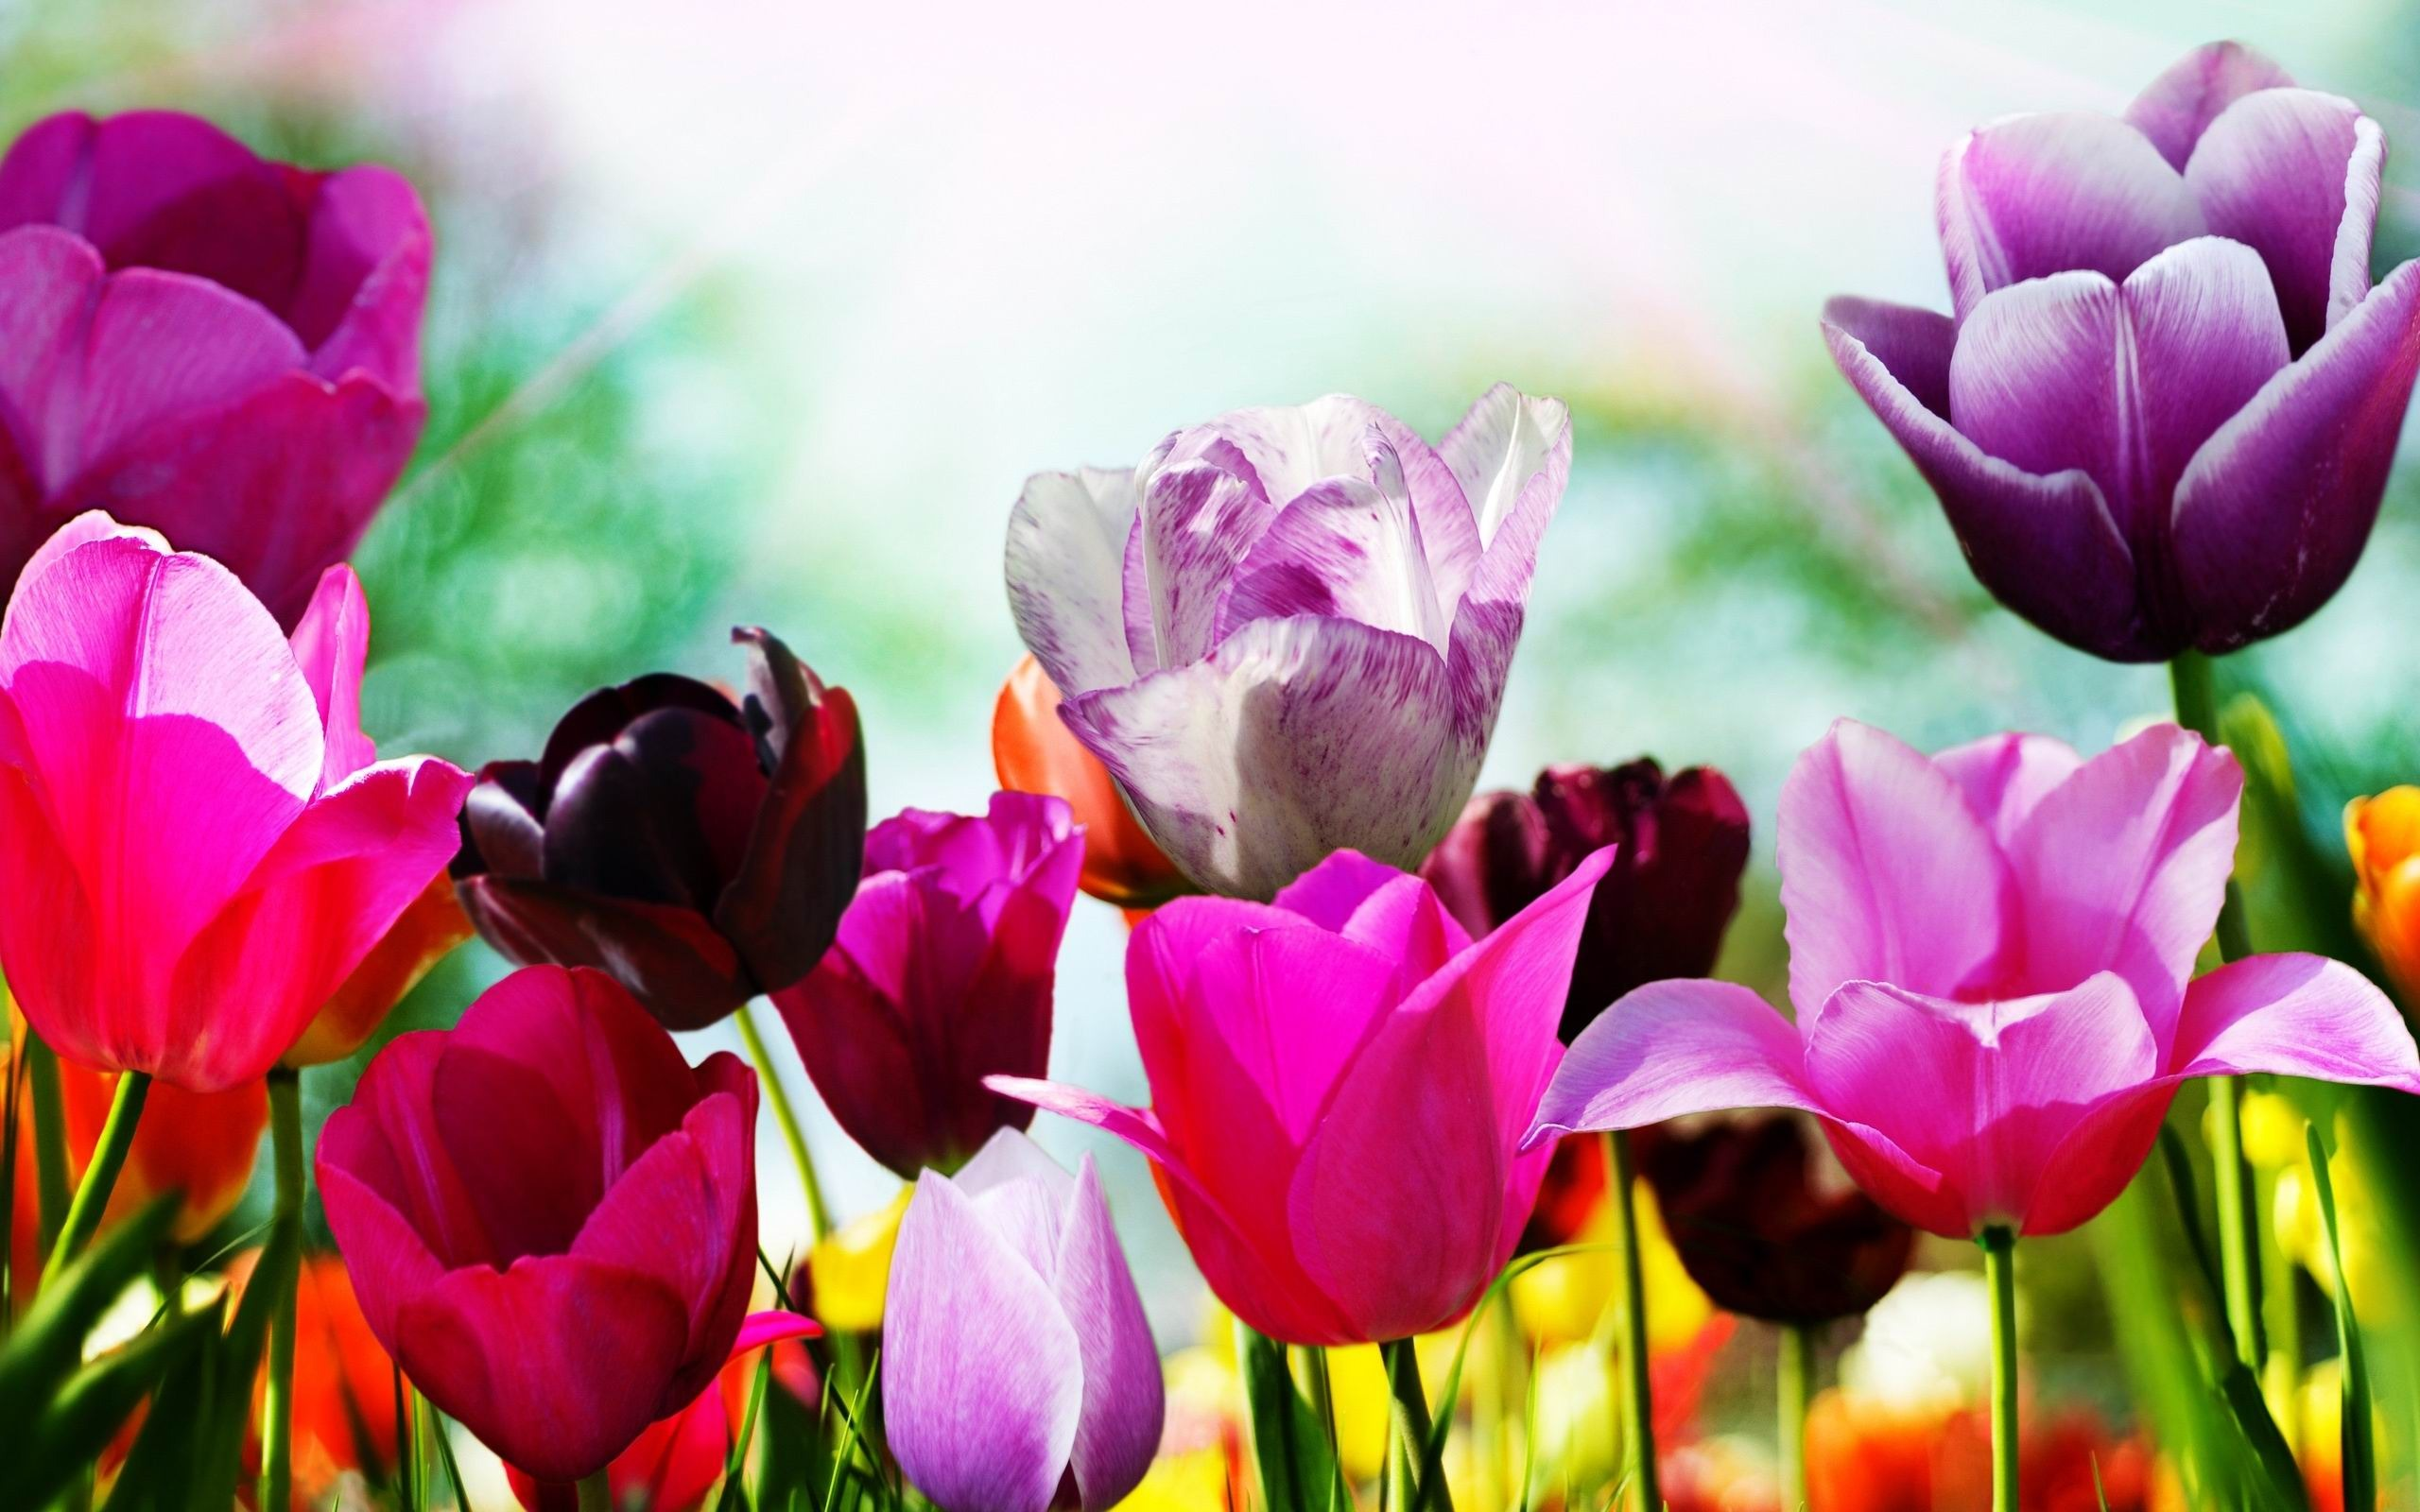 Tulips in spring flowers desktop wallpaper preview 10wallpaper spring flowers desktop wallpaper tulipsinspring flowersdesktopwallpaper2012520 original resolution 2560x1600 mightylinksfo